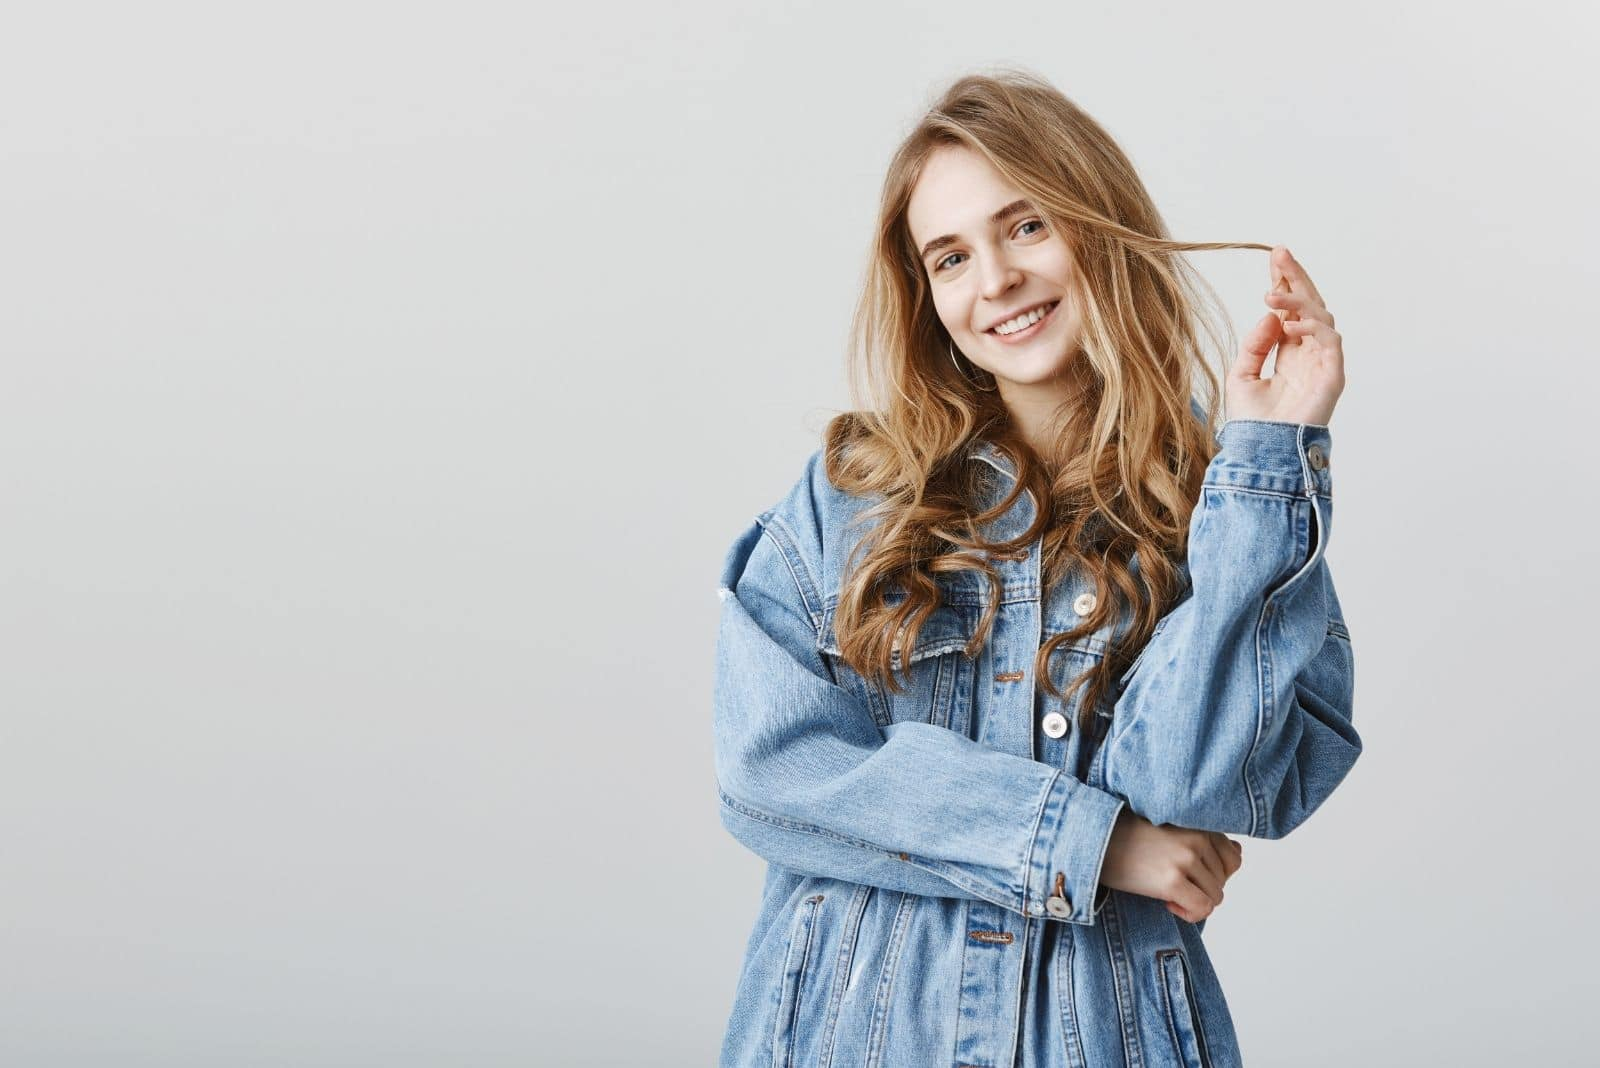 young woman standing playing with her blonde hair and wearing oversized denim jacket